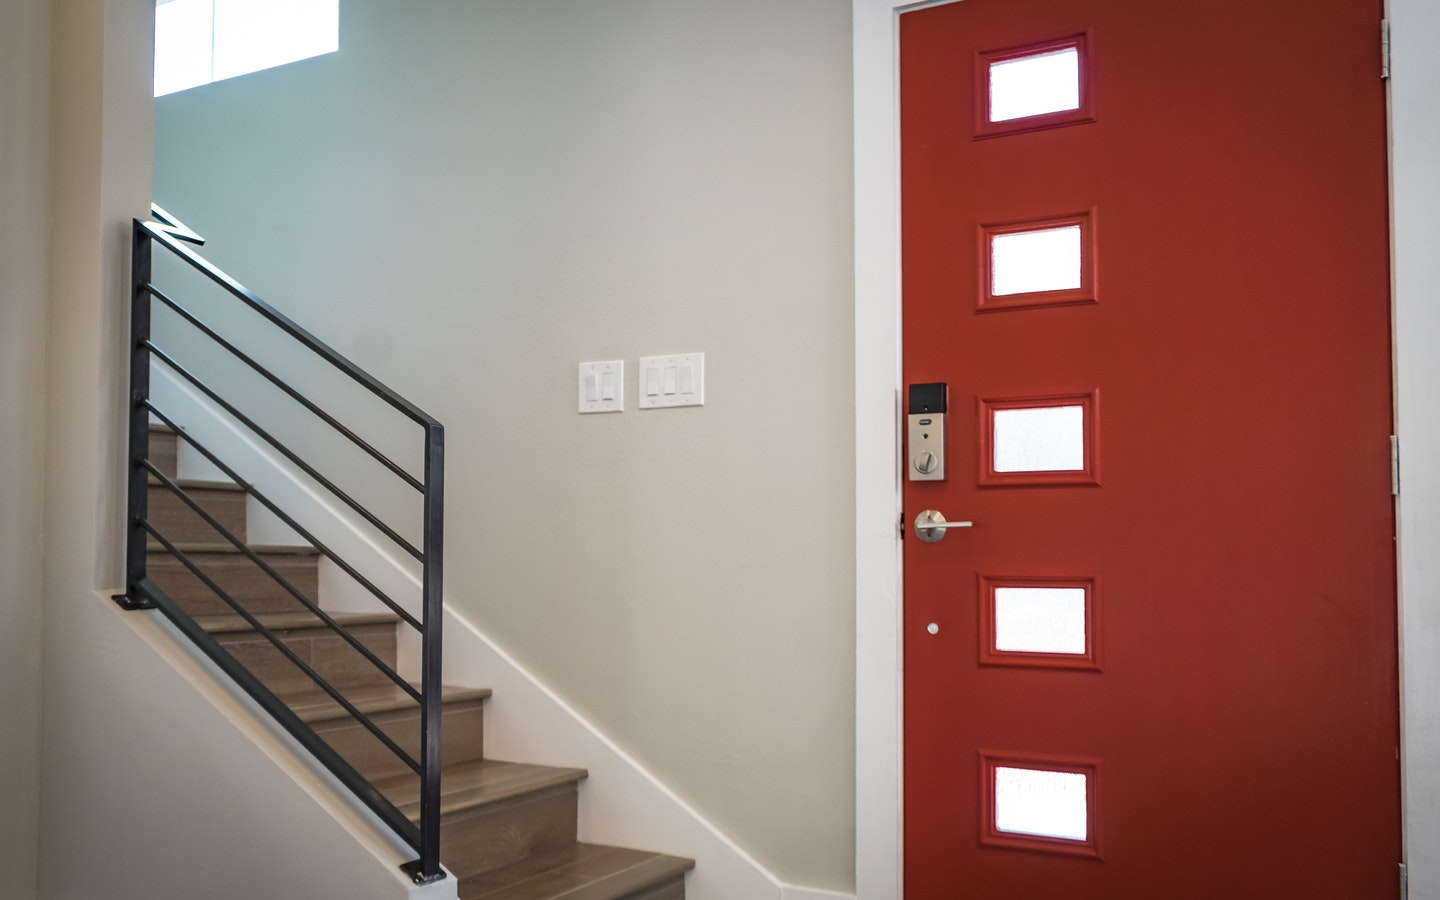 Picture of an apartment's entrance